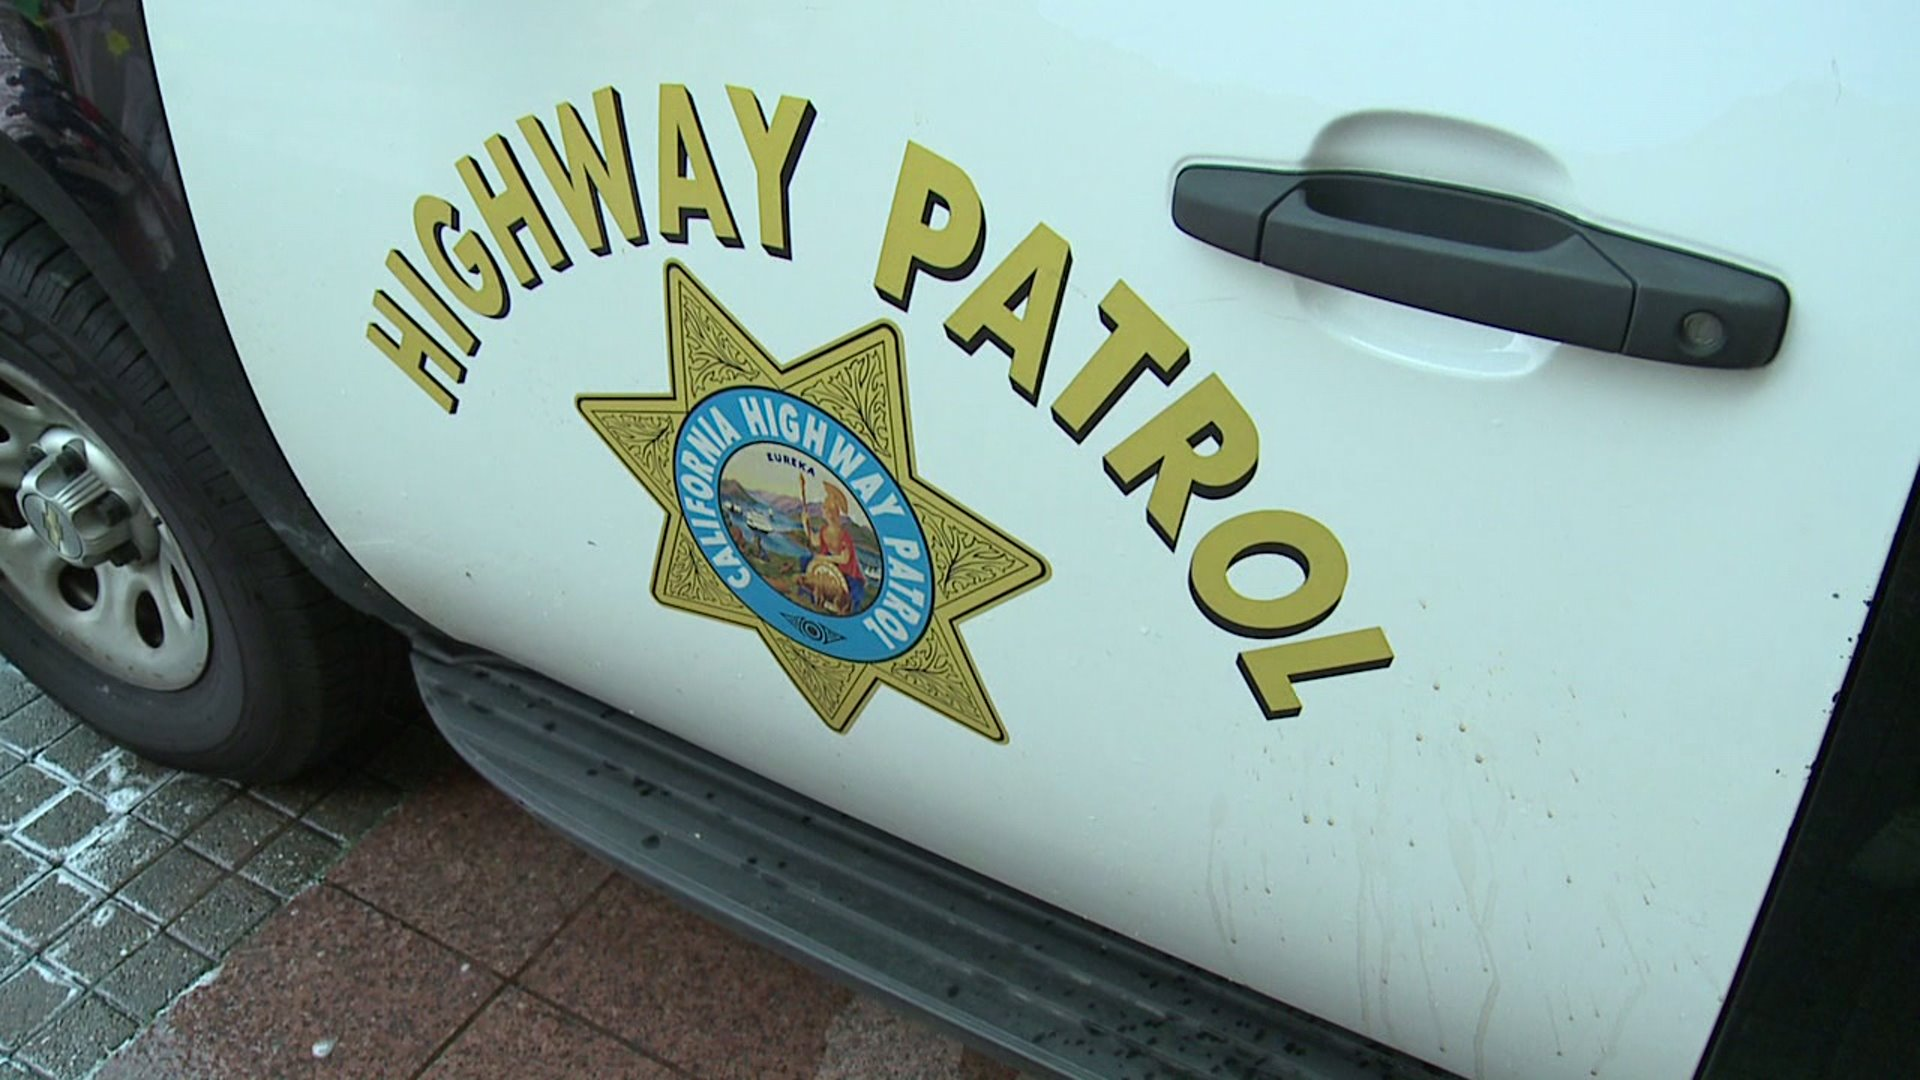 A California Highway Patrol car is seen in this undated photo. (File)